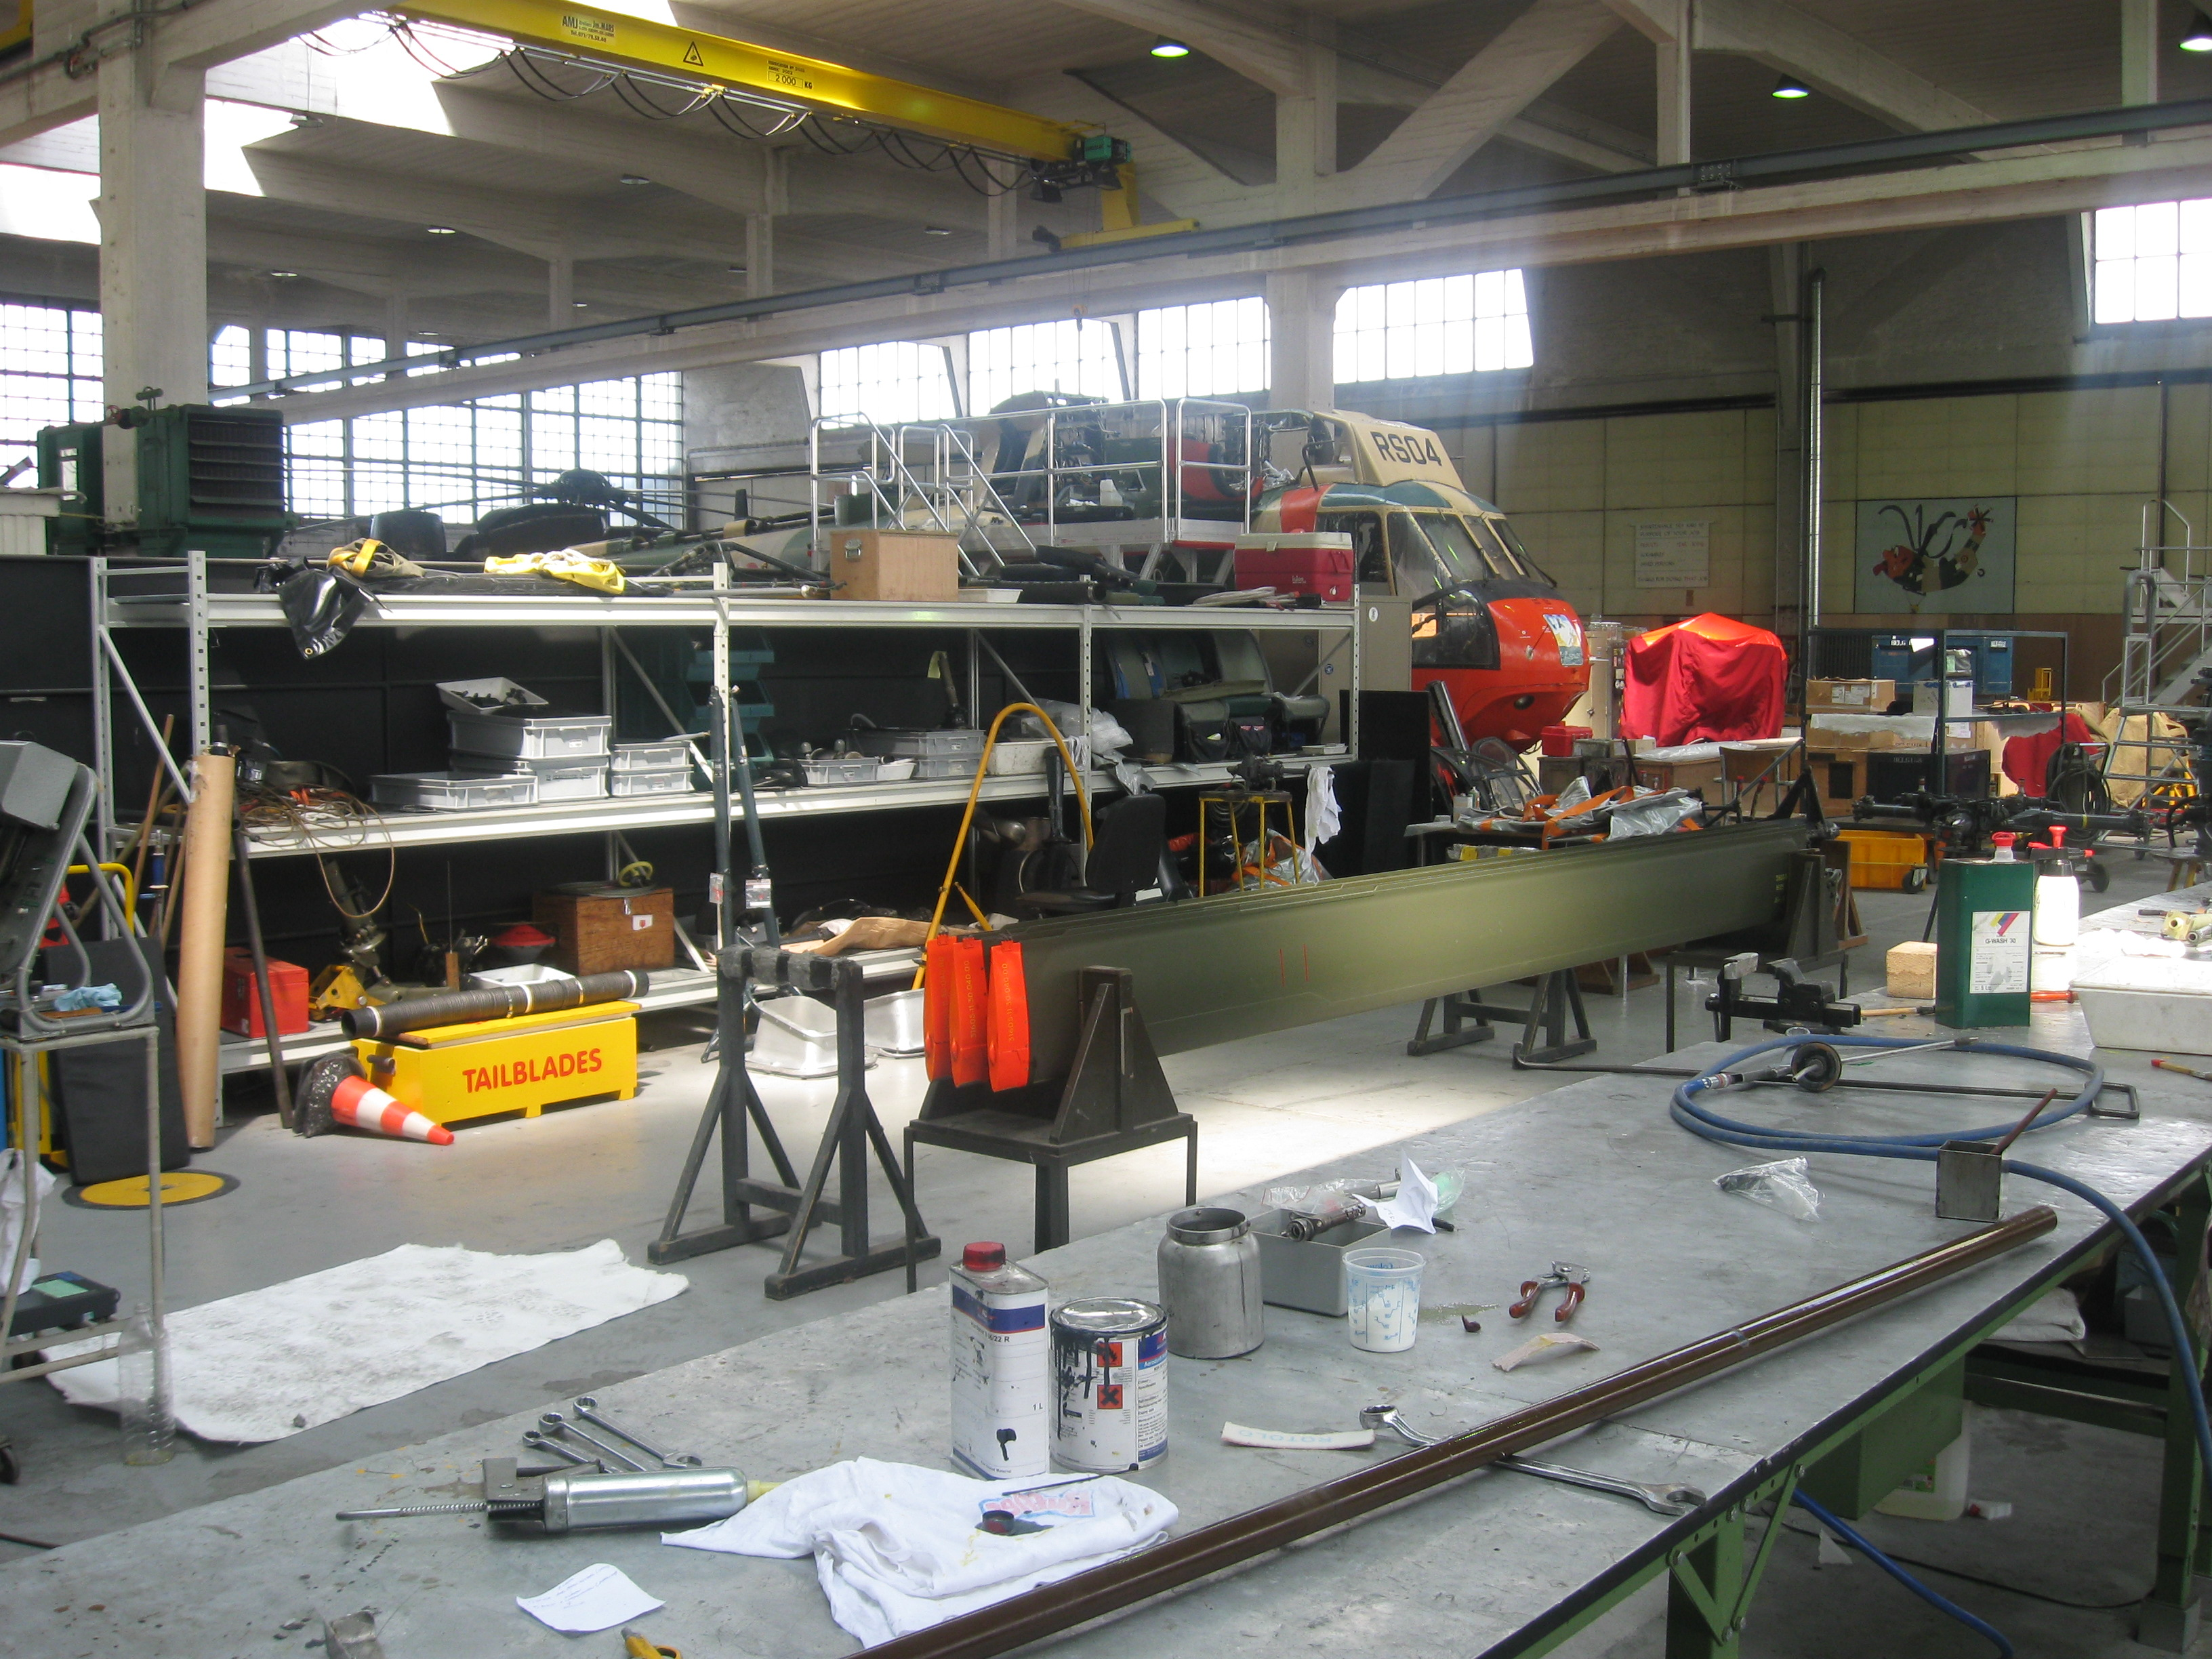 Helico's : divers, photos, infos - Page 2 1005180812051050246058963